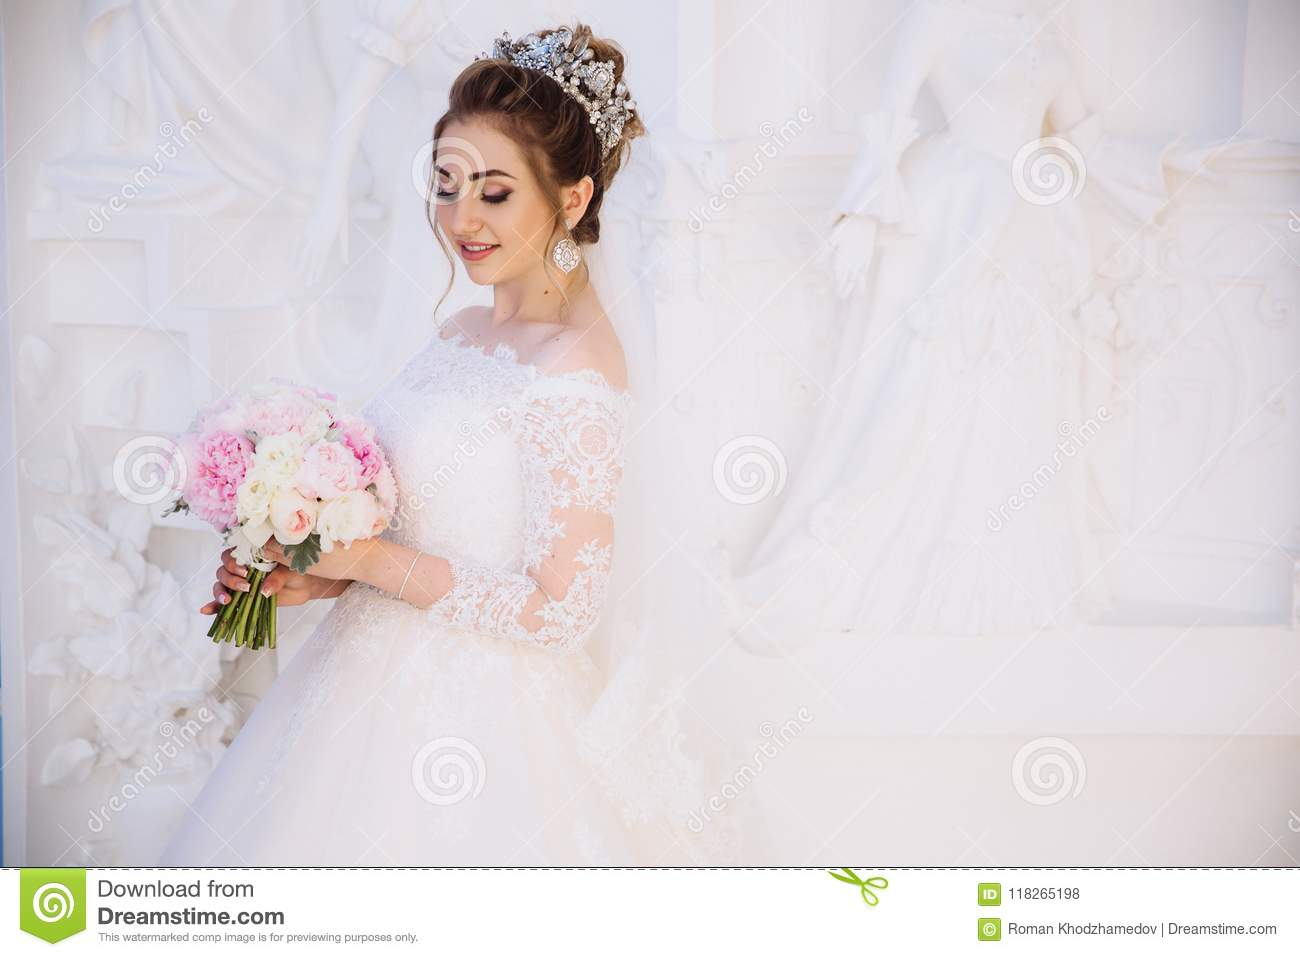 A Girl In A White Wedding Dress With Lace Posing In A Snow White